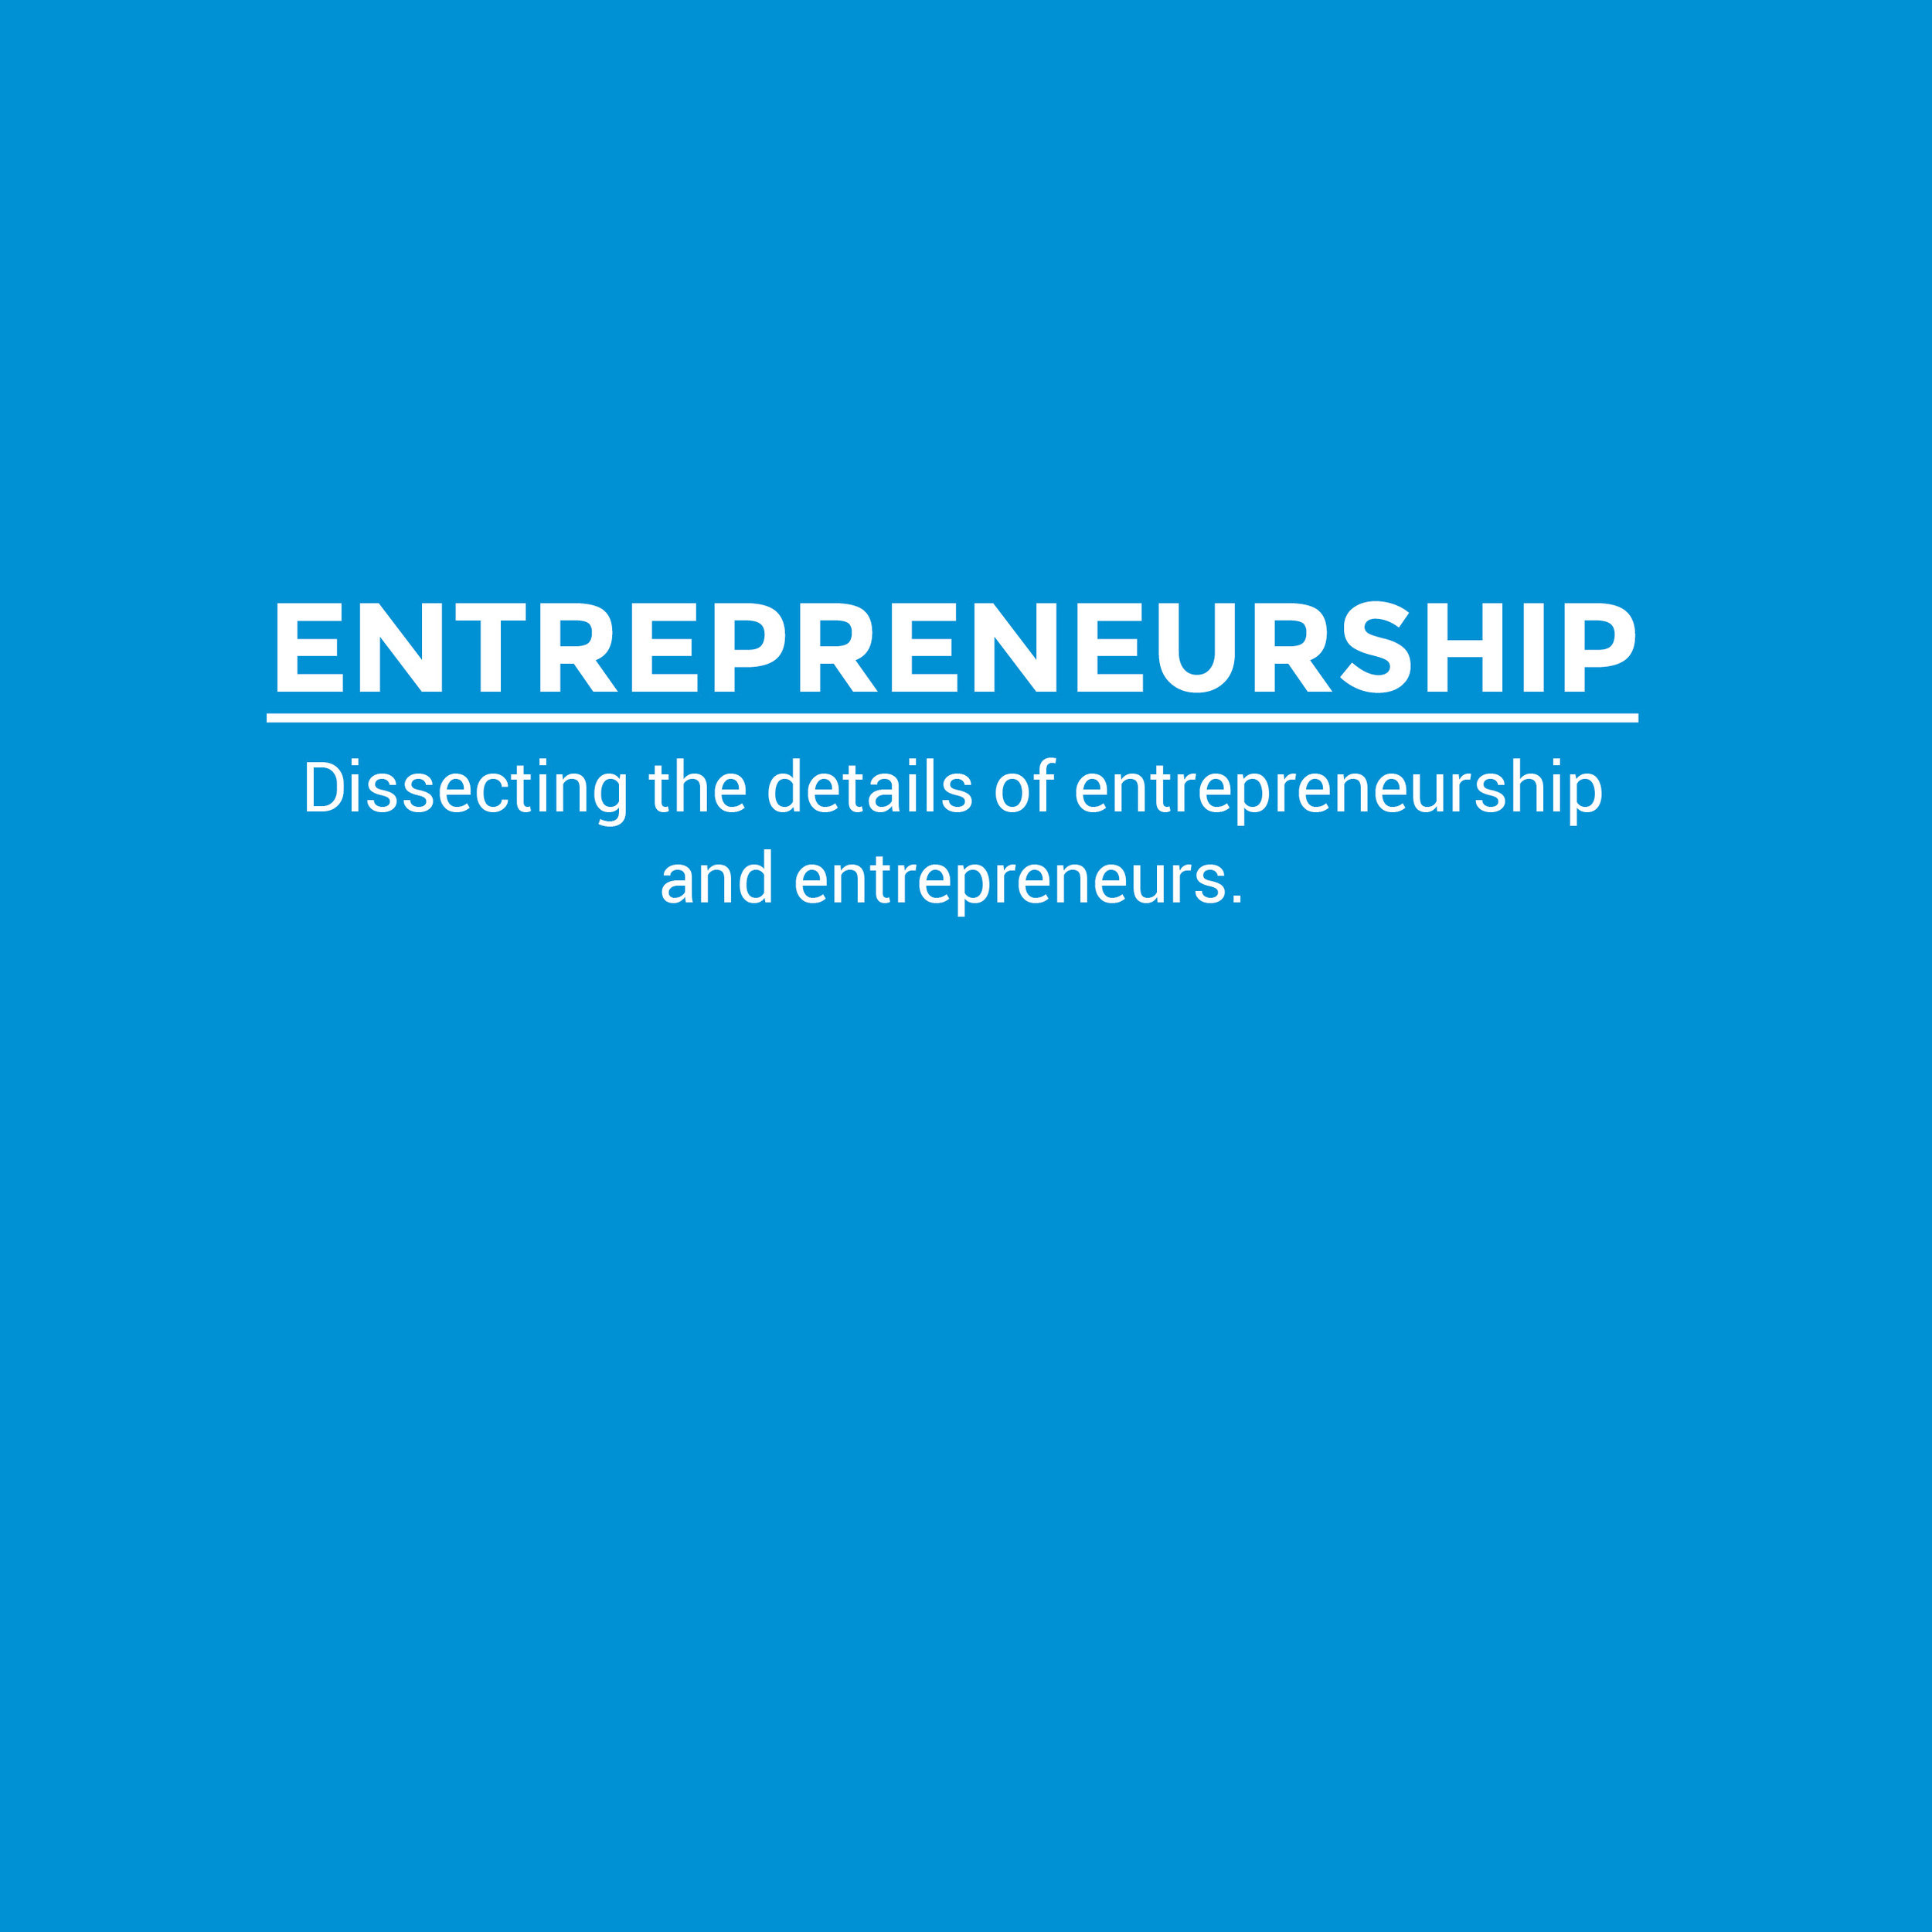 What exactly is entrepreneurship? Entrepreneurs play a significant role in our society. They are major players in the growth of jobs and the overall economy and they are often the drivers of innovation in many sectors. In this online session, we lift the hood on entrepreneurship and take a closer look at the mechanics behind this age old concept  here.